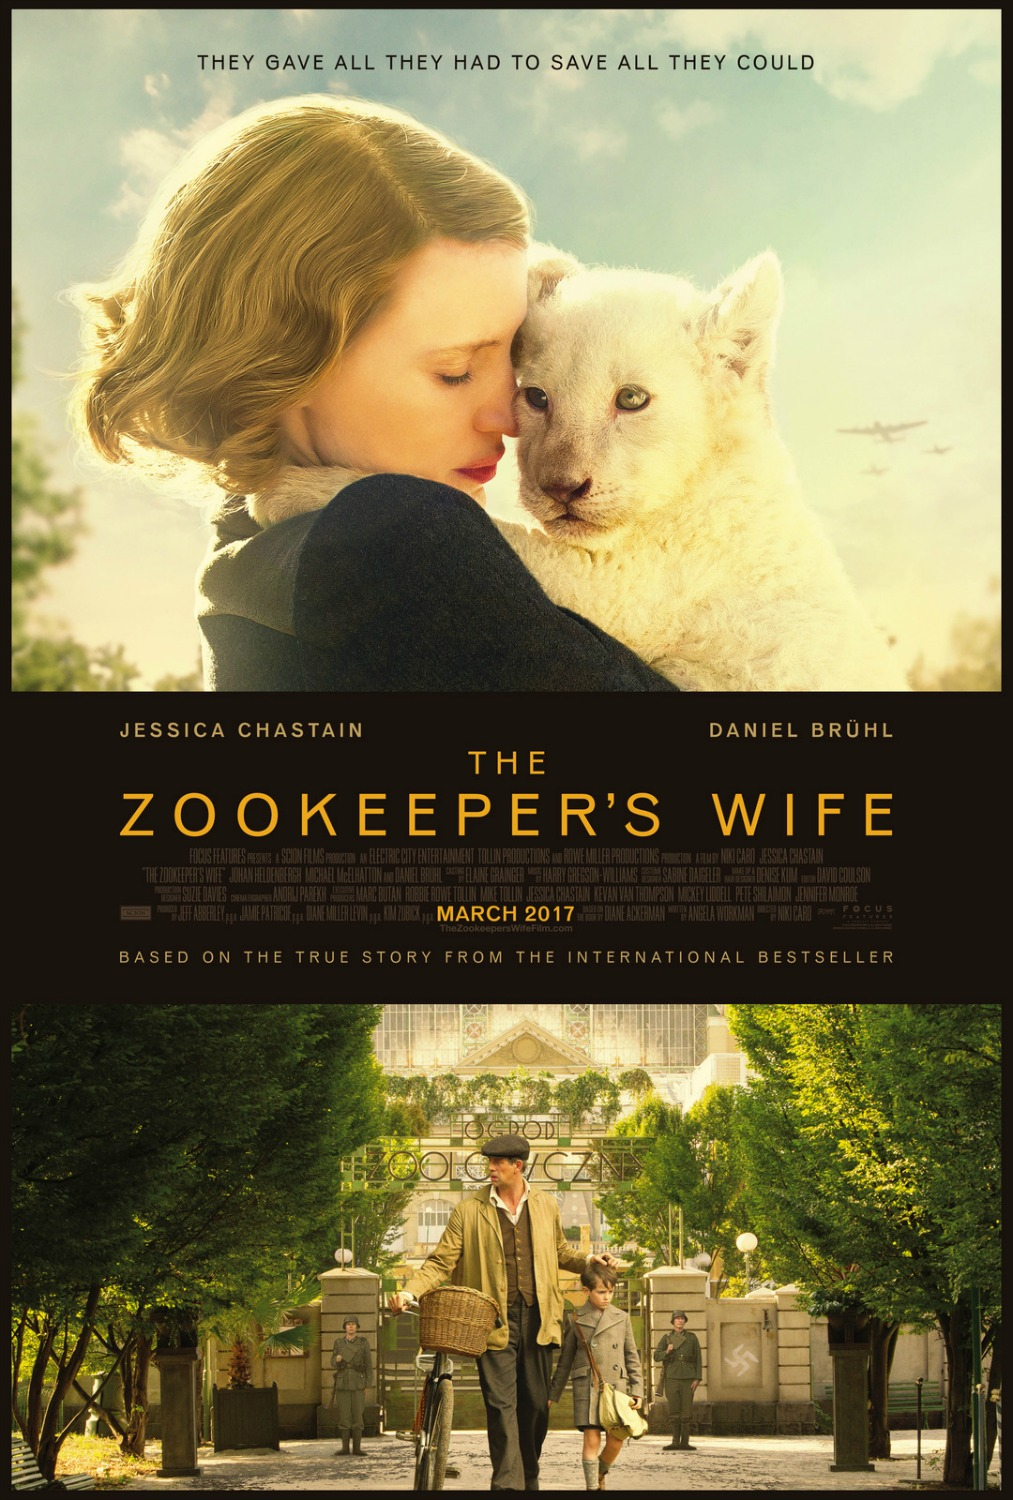 The Zookeeper's Wife New Clips #TheZooKeepersWife - simplytodaylife.com